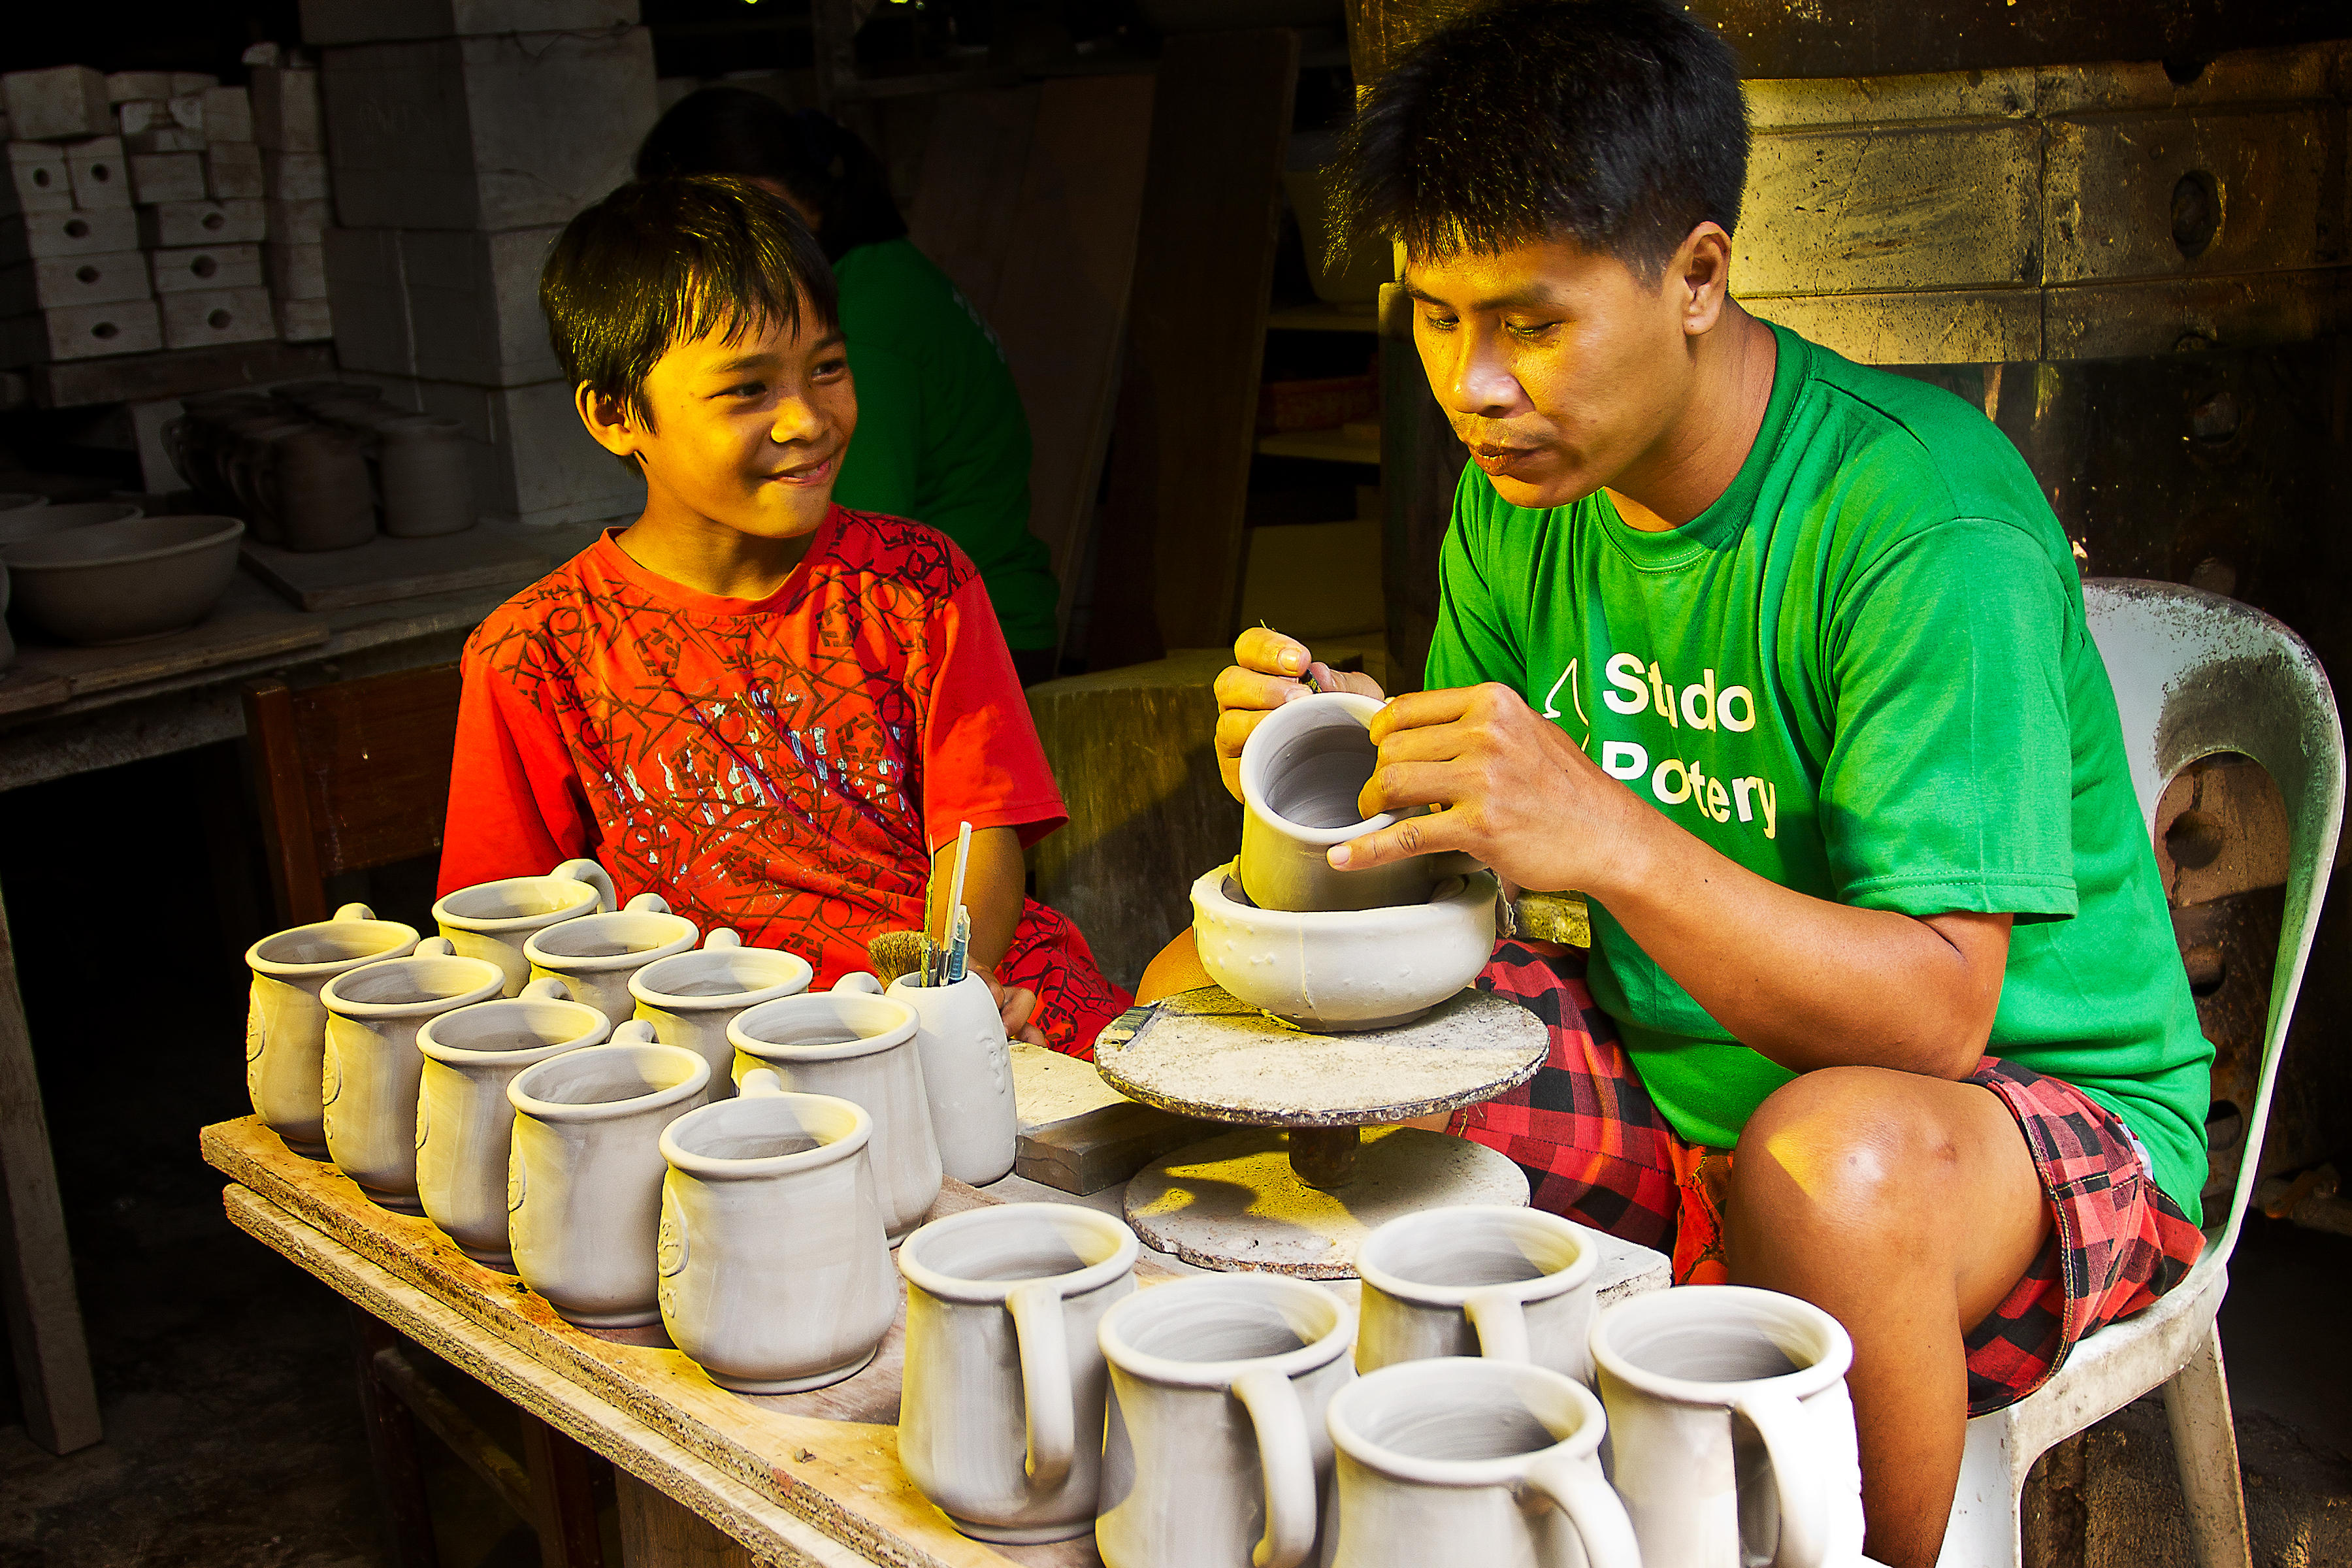 A father in the Philippines teaches his son the basics of pottery. © 2012 Kai, Courtesy of Photoshare